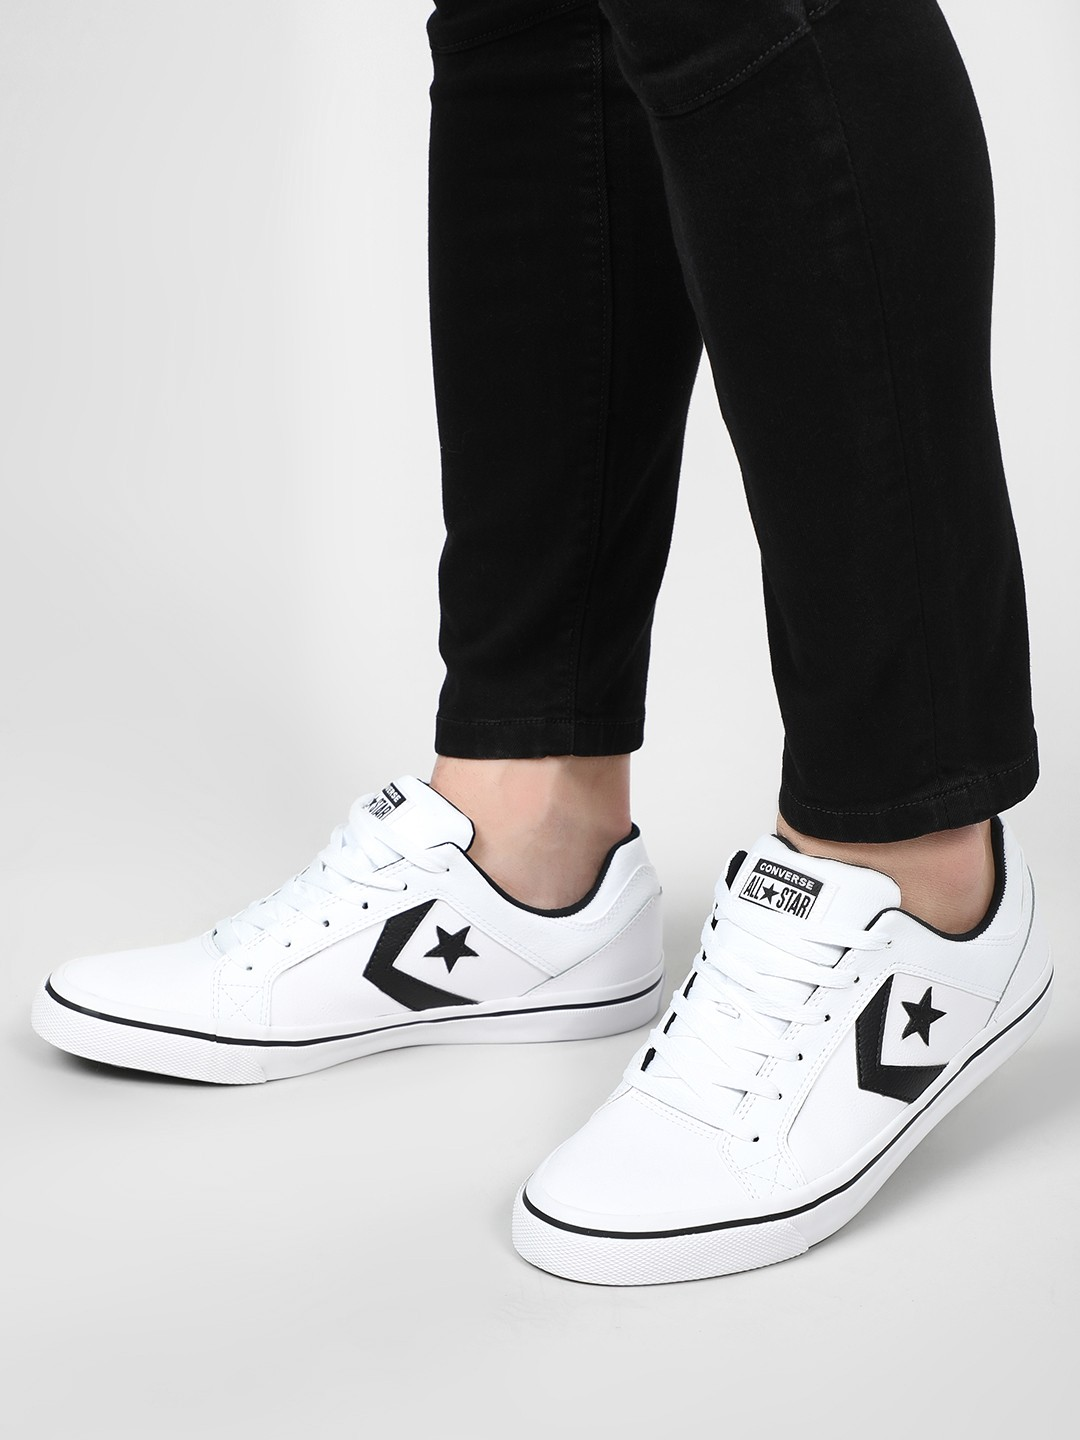 Converse White One Star Patented Low Top Sneakers 1